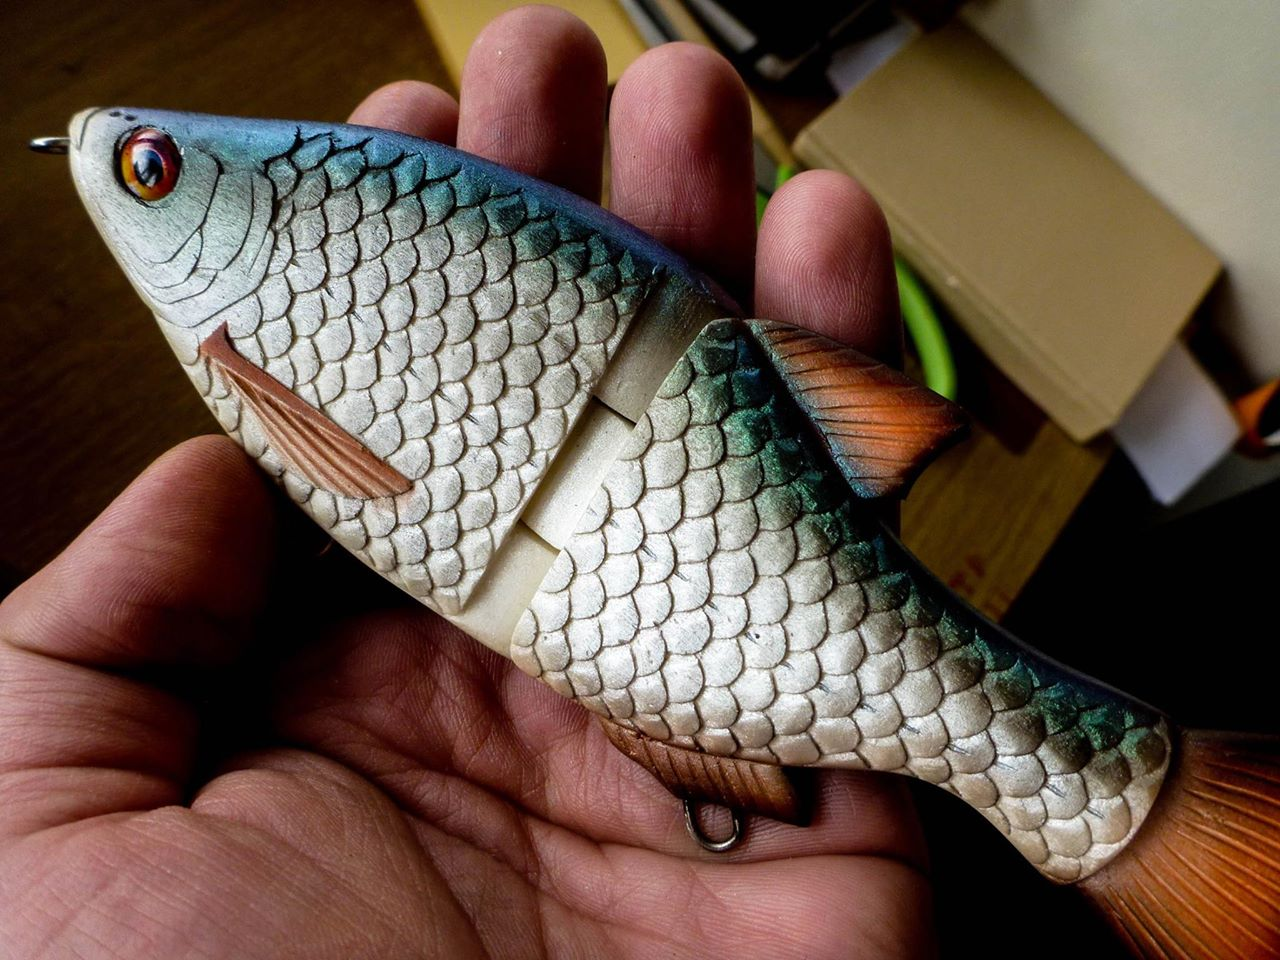 Homemade Fishing Lure Blog: Tank Test Tuesday